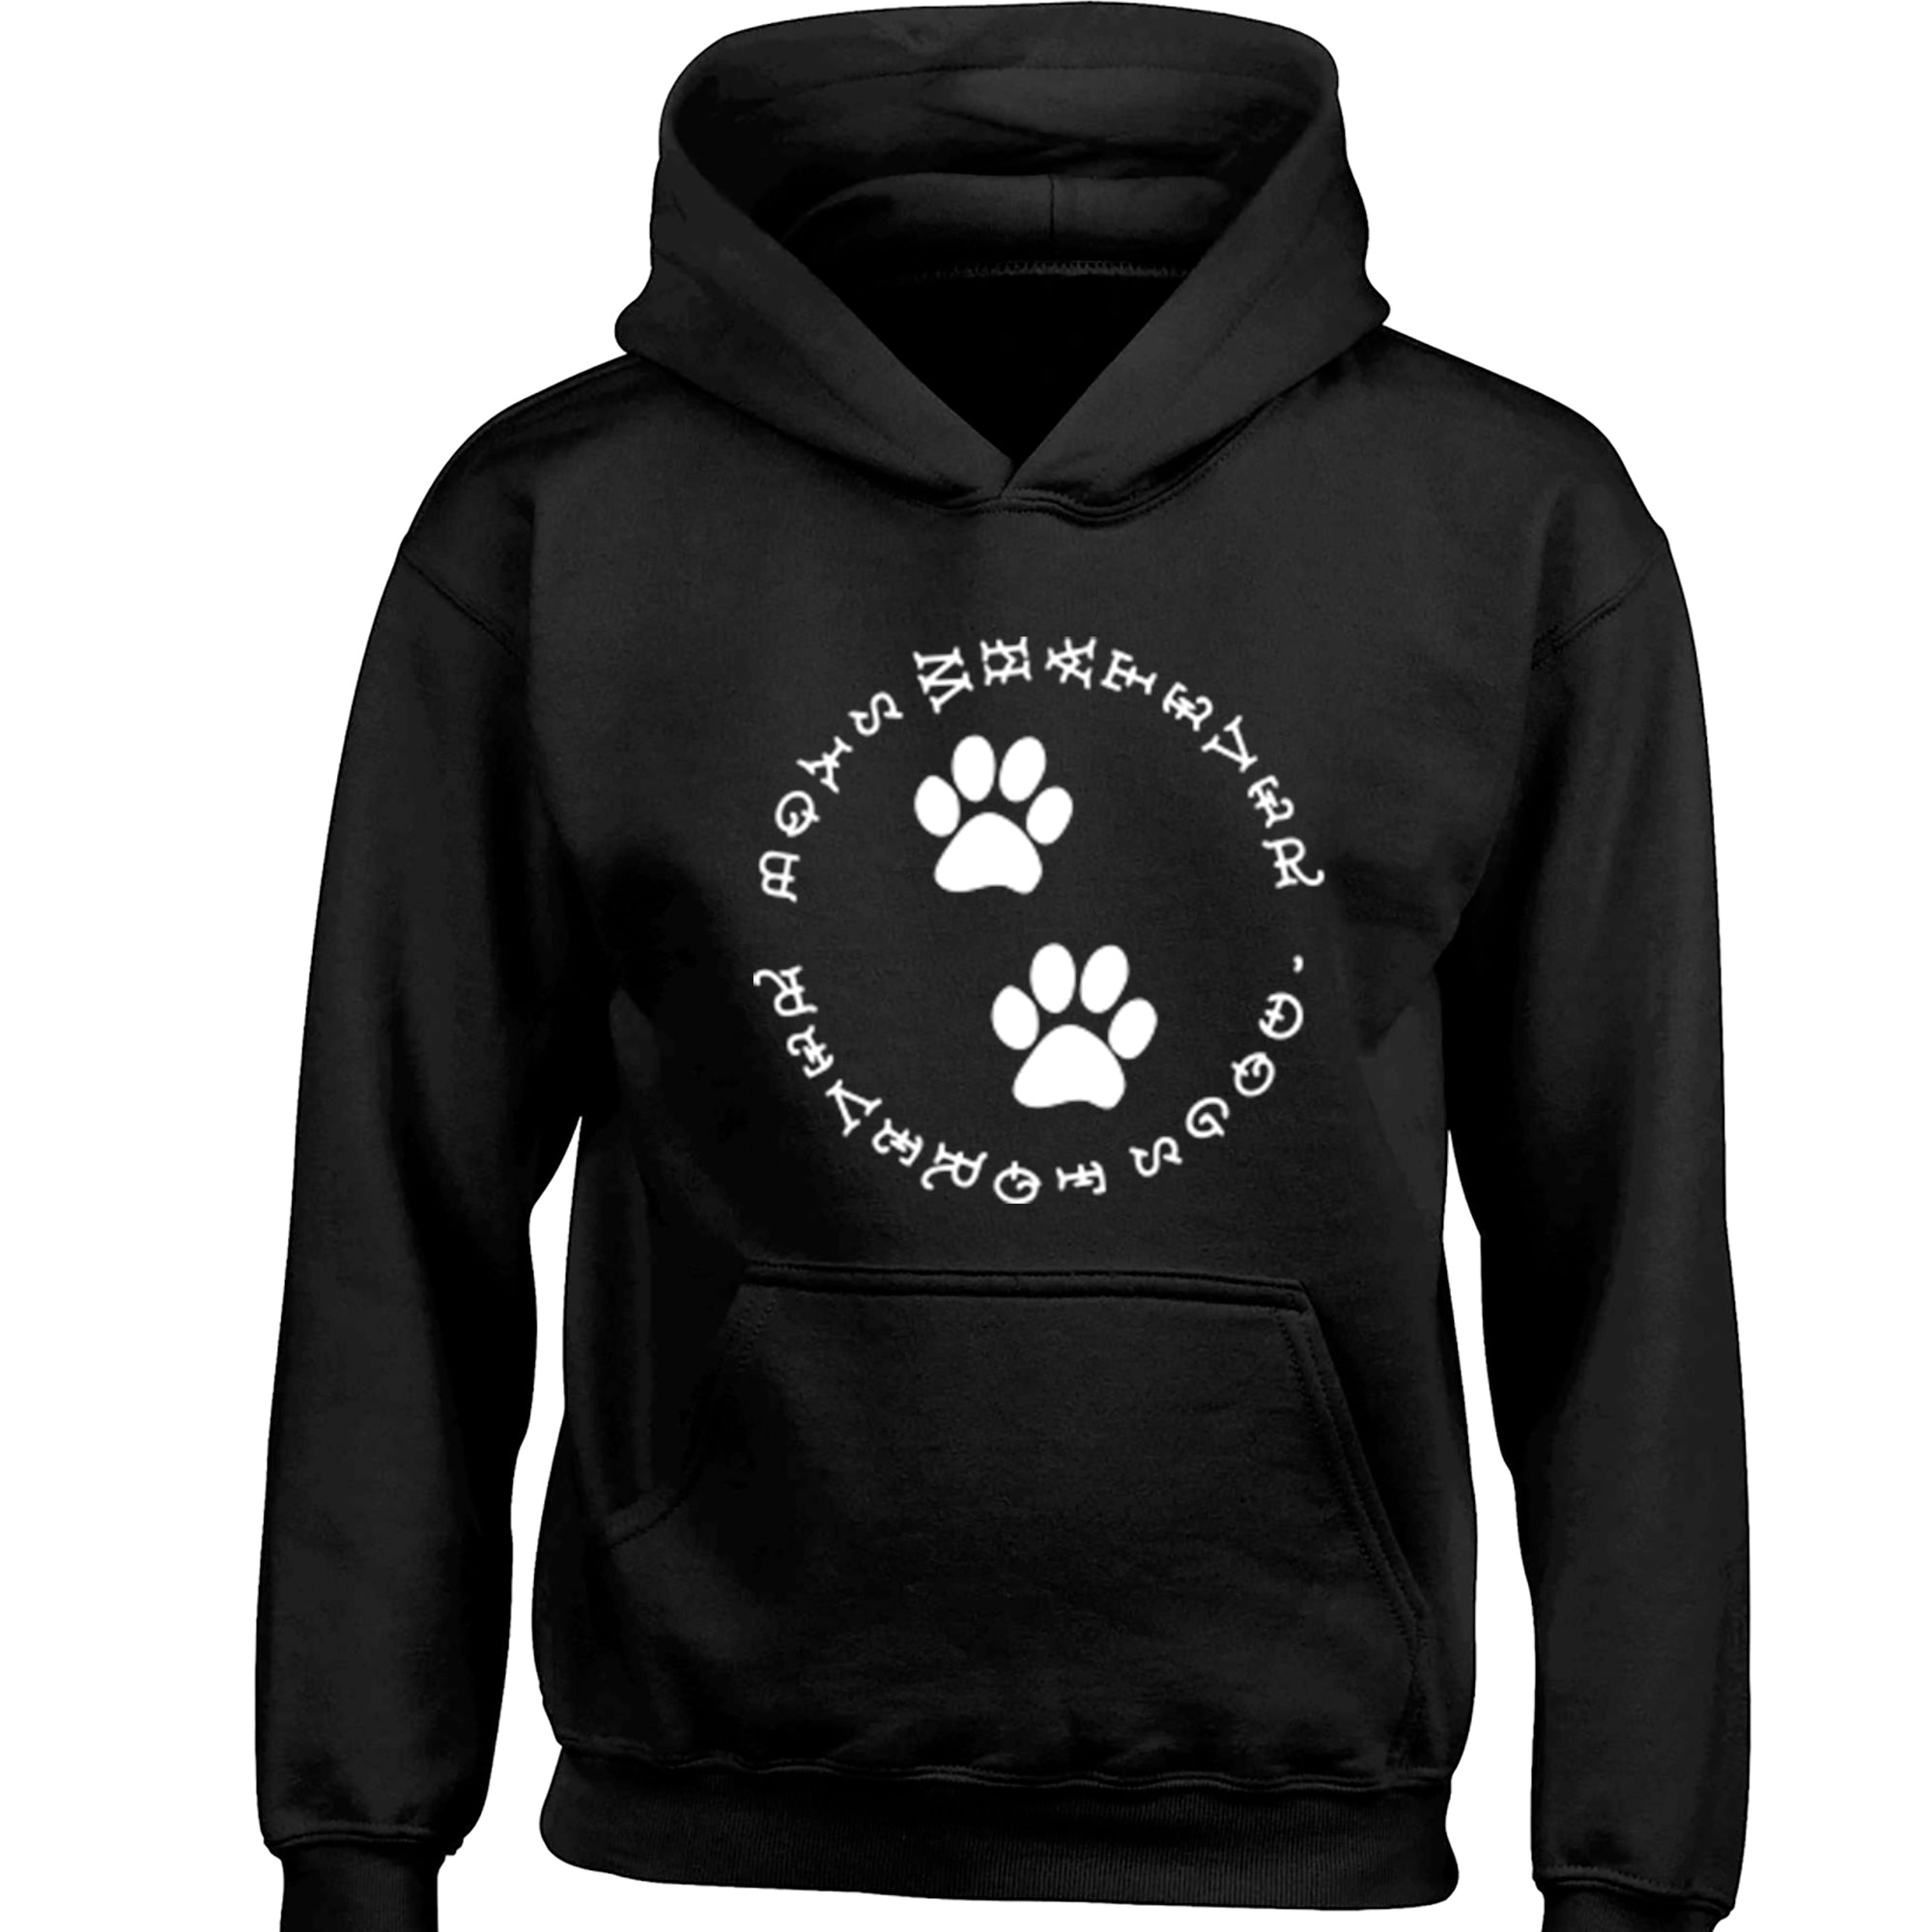 Dogs Forever Boys Whatever Childrens Ages 3/4-12/14 Unisex Hoodie S0015 - Illustrated Identity Ltd.